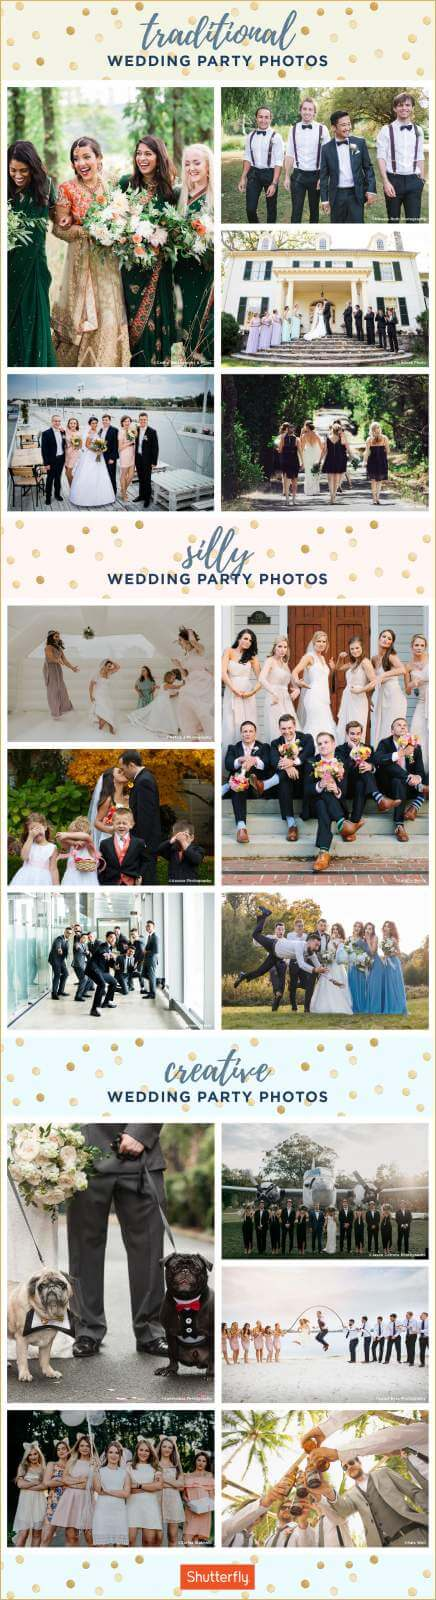 wedding party photos infographic